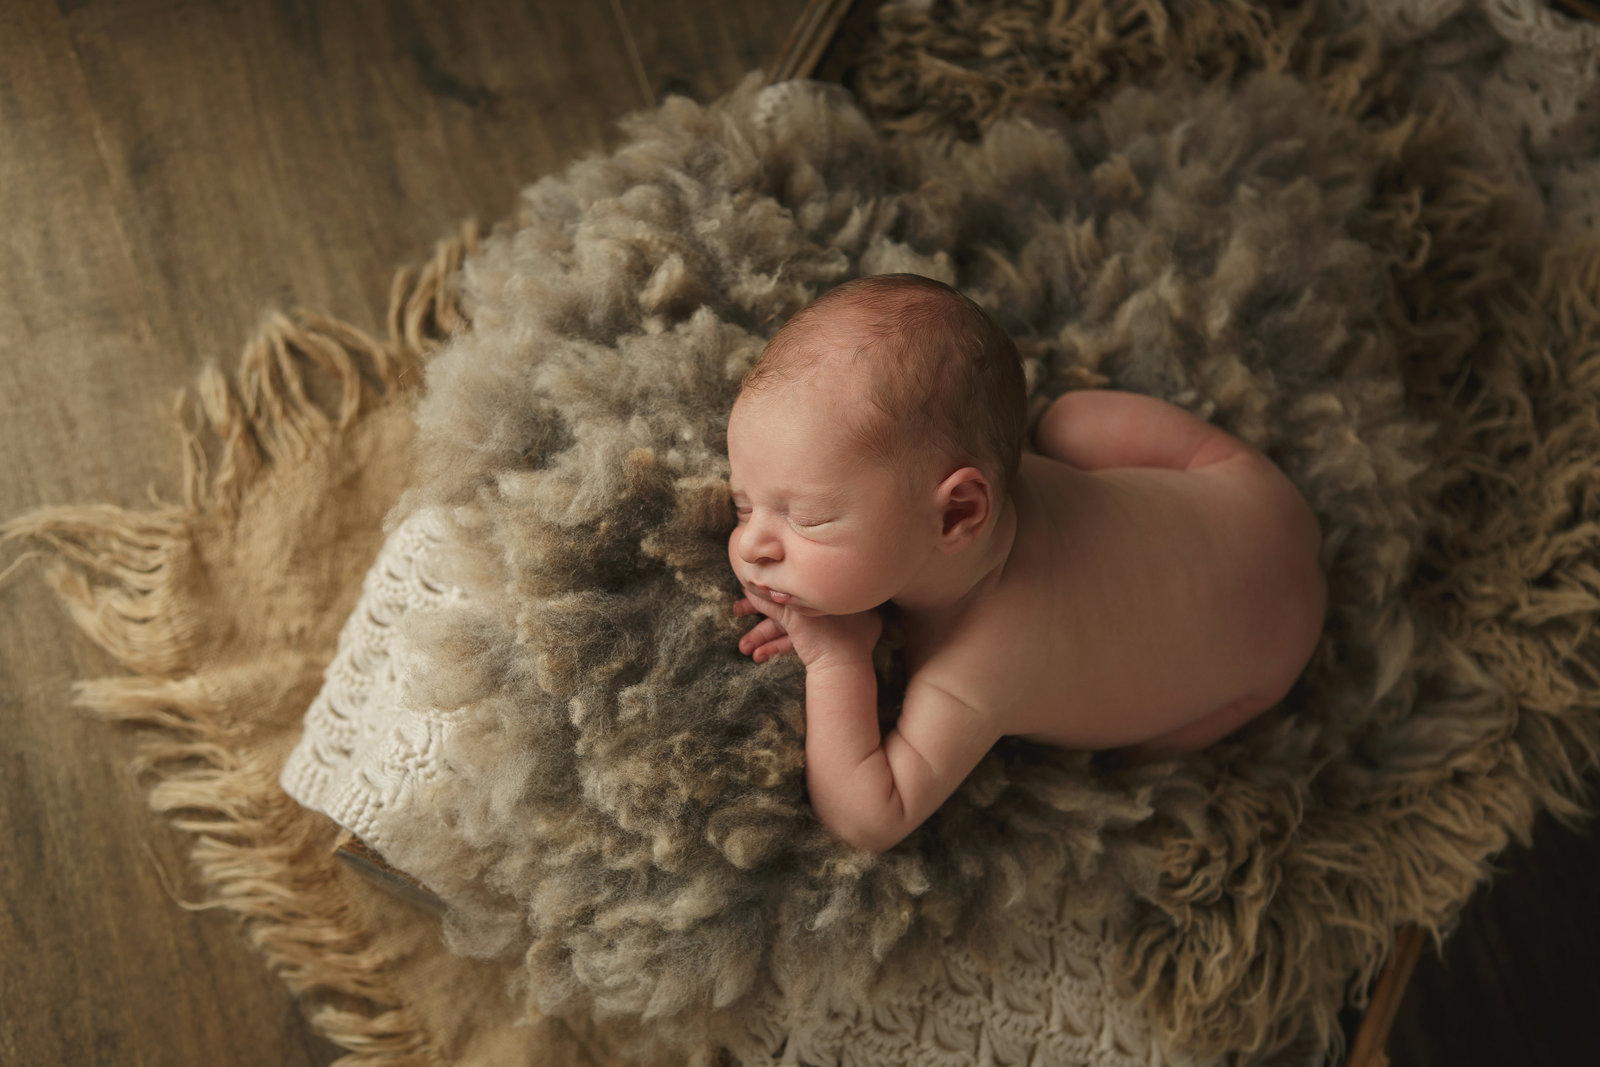 baby boy newborn sleeping in wool and burlap in a barnwood crate on wood backdrop hudson valley ny photographer